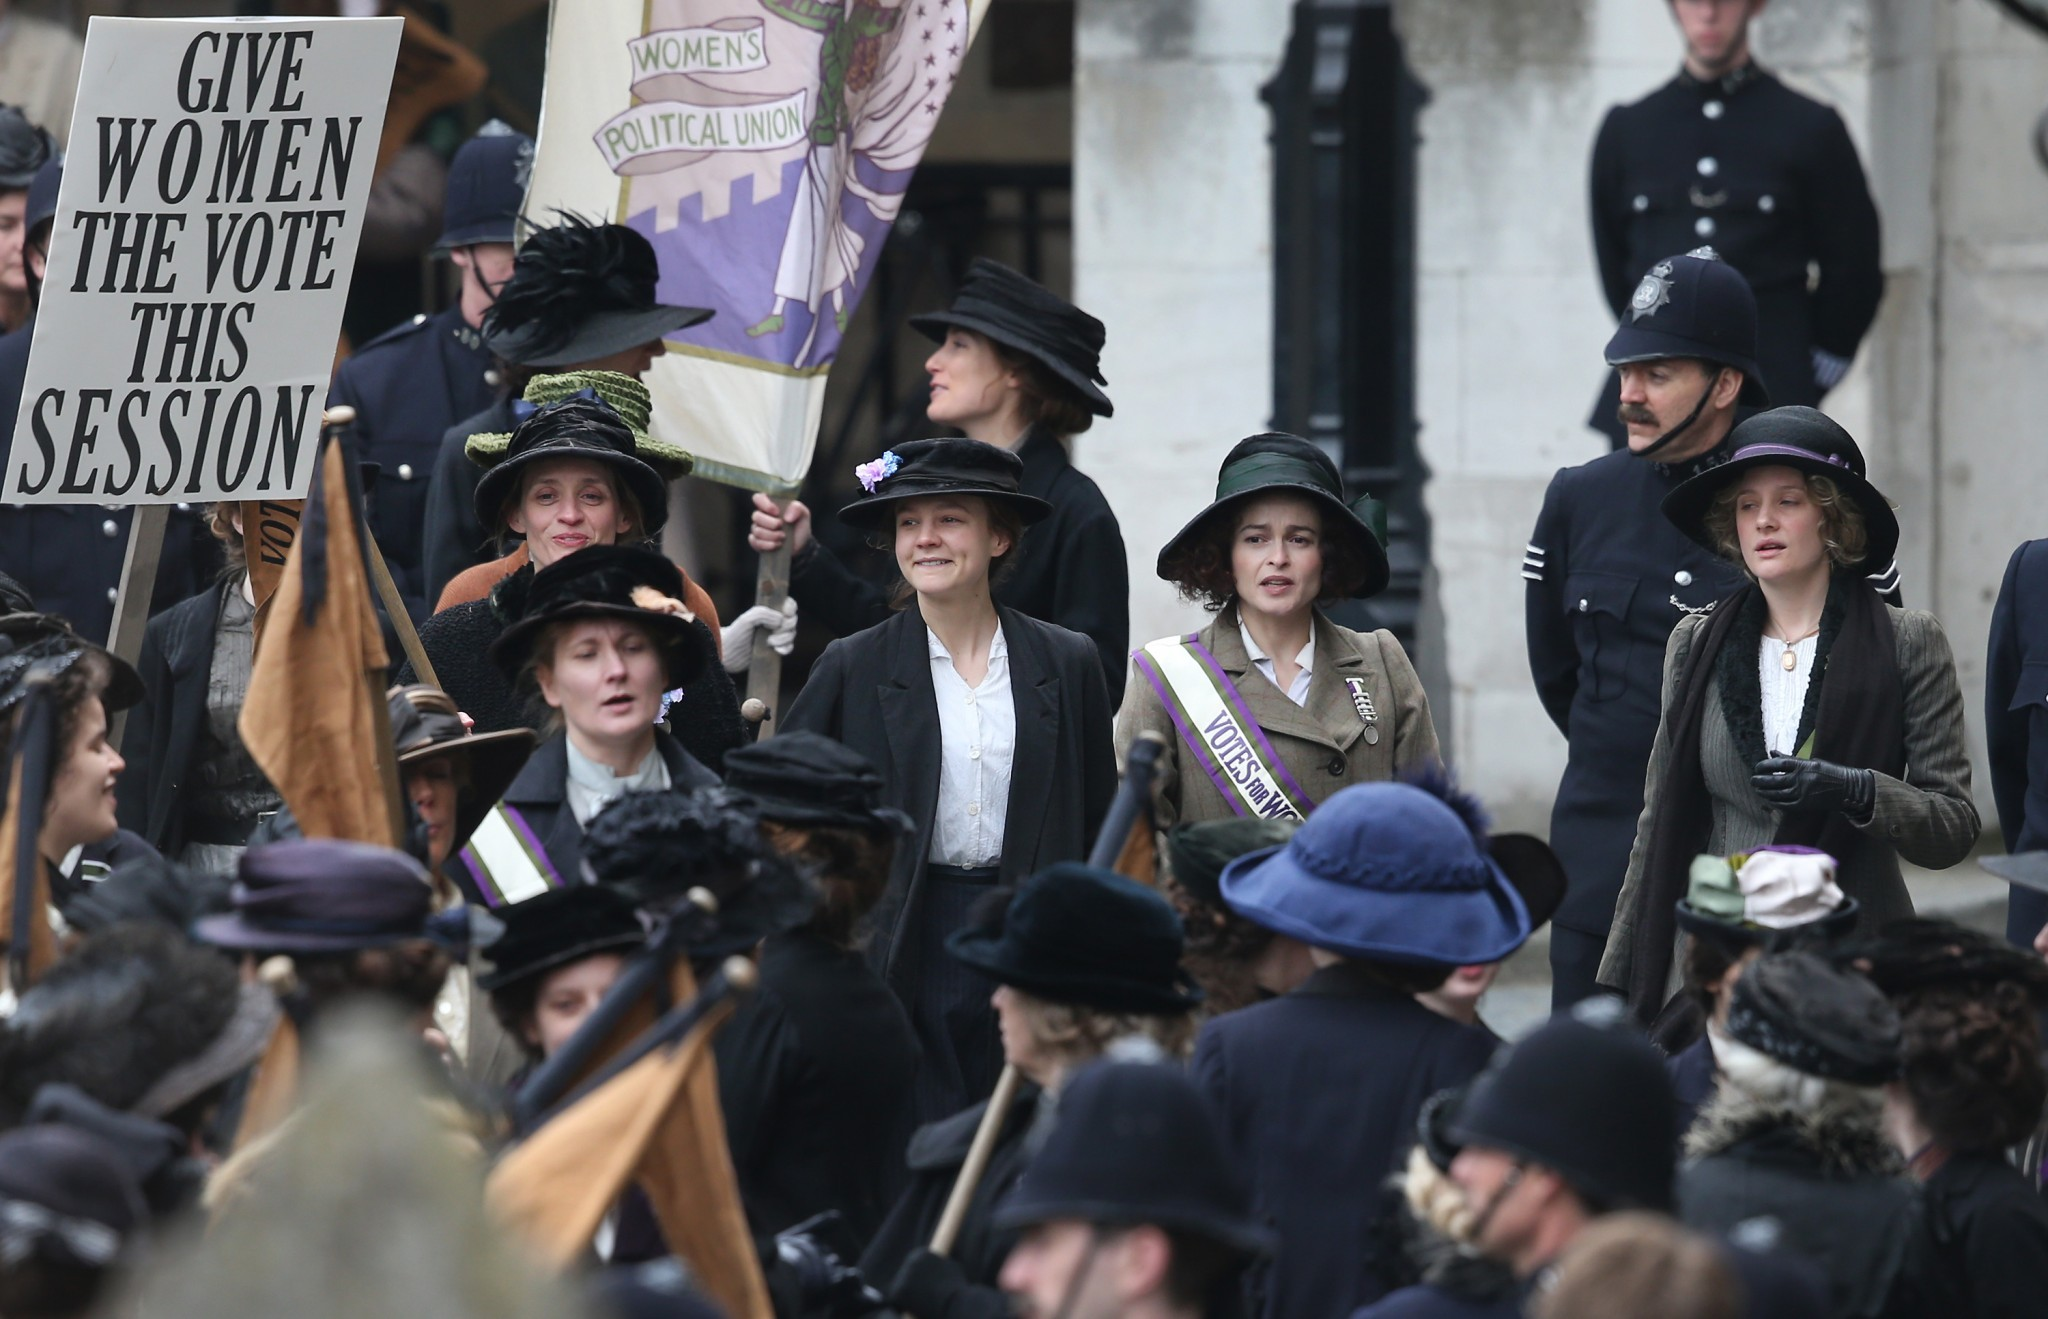 Suffragette_filmeistorice3_Fabulous_Muses